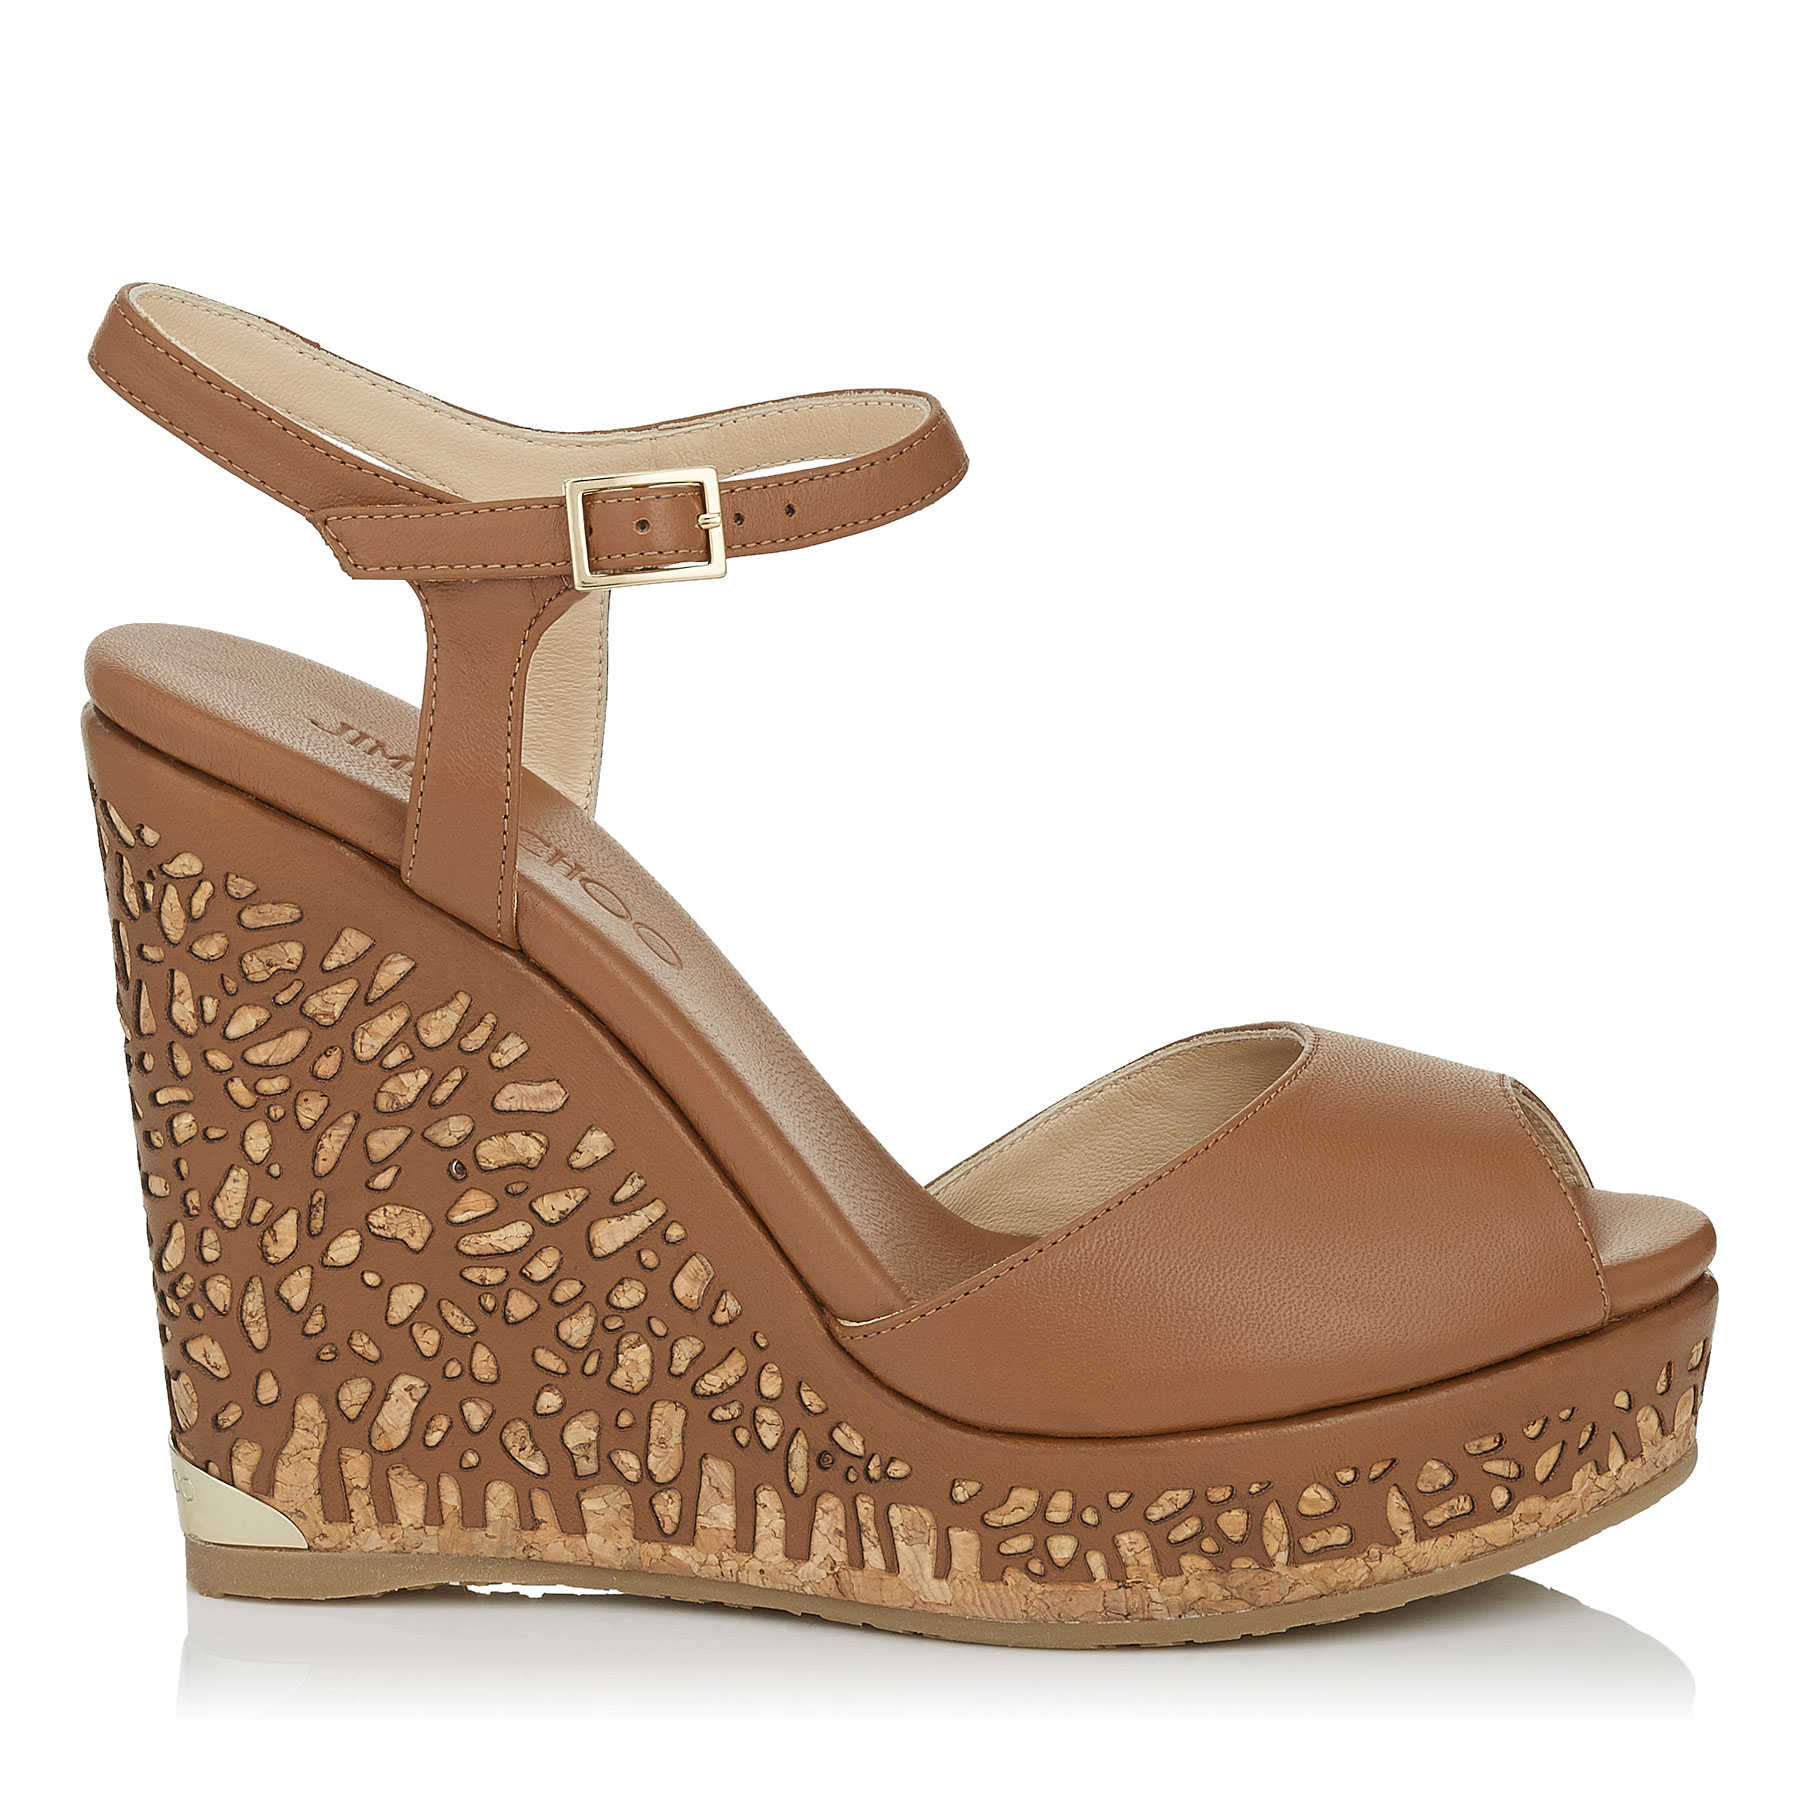 PERLA 120 Canyon Leather Laser Perforated Cork Wedges